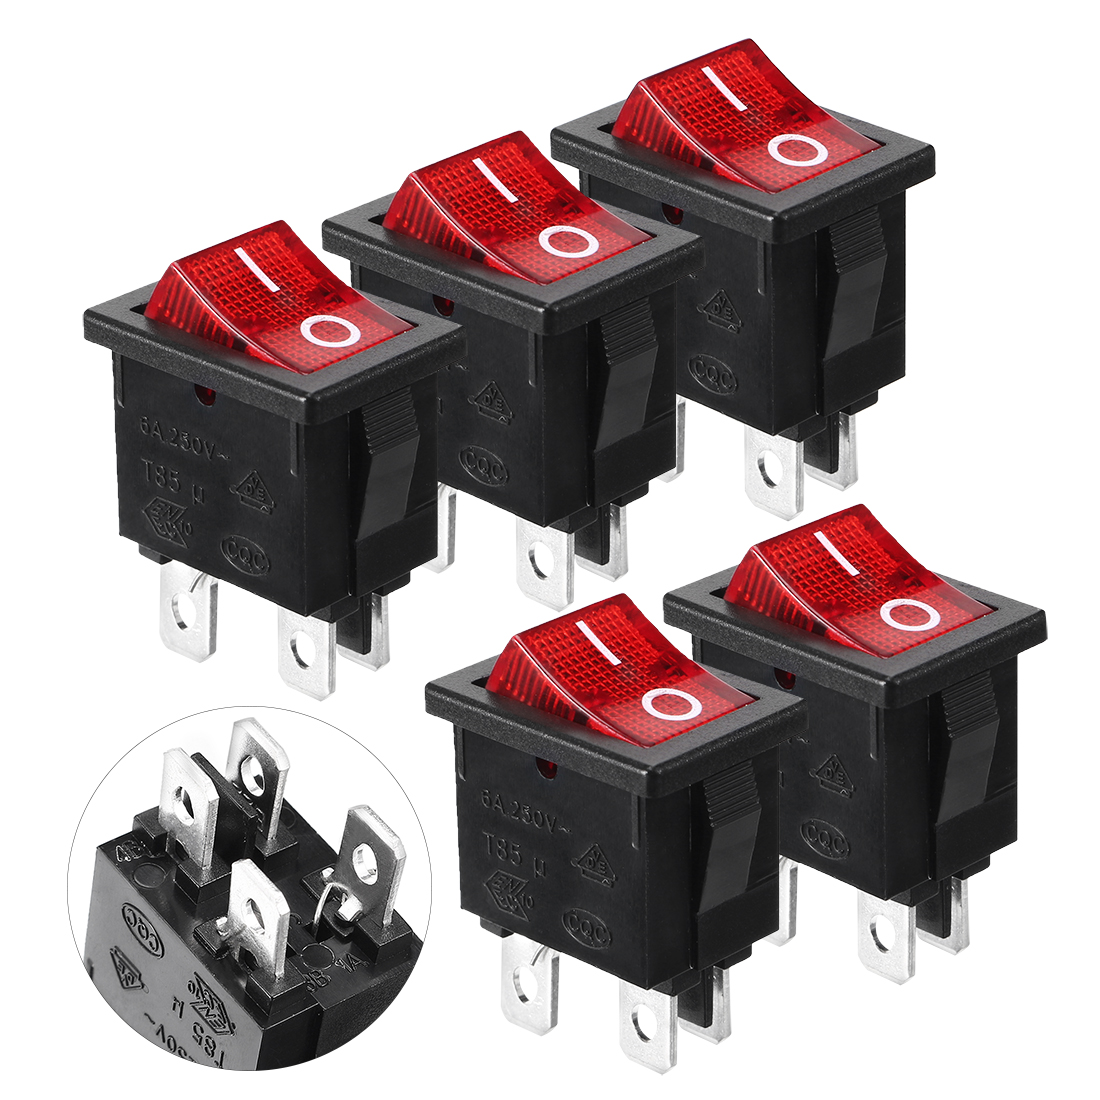 5pcs AC 110-120V Red Indicator Light ON/OFF 2Position 4Pins Snap in Boat Rocker Switches